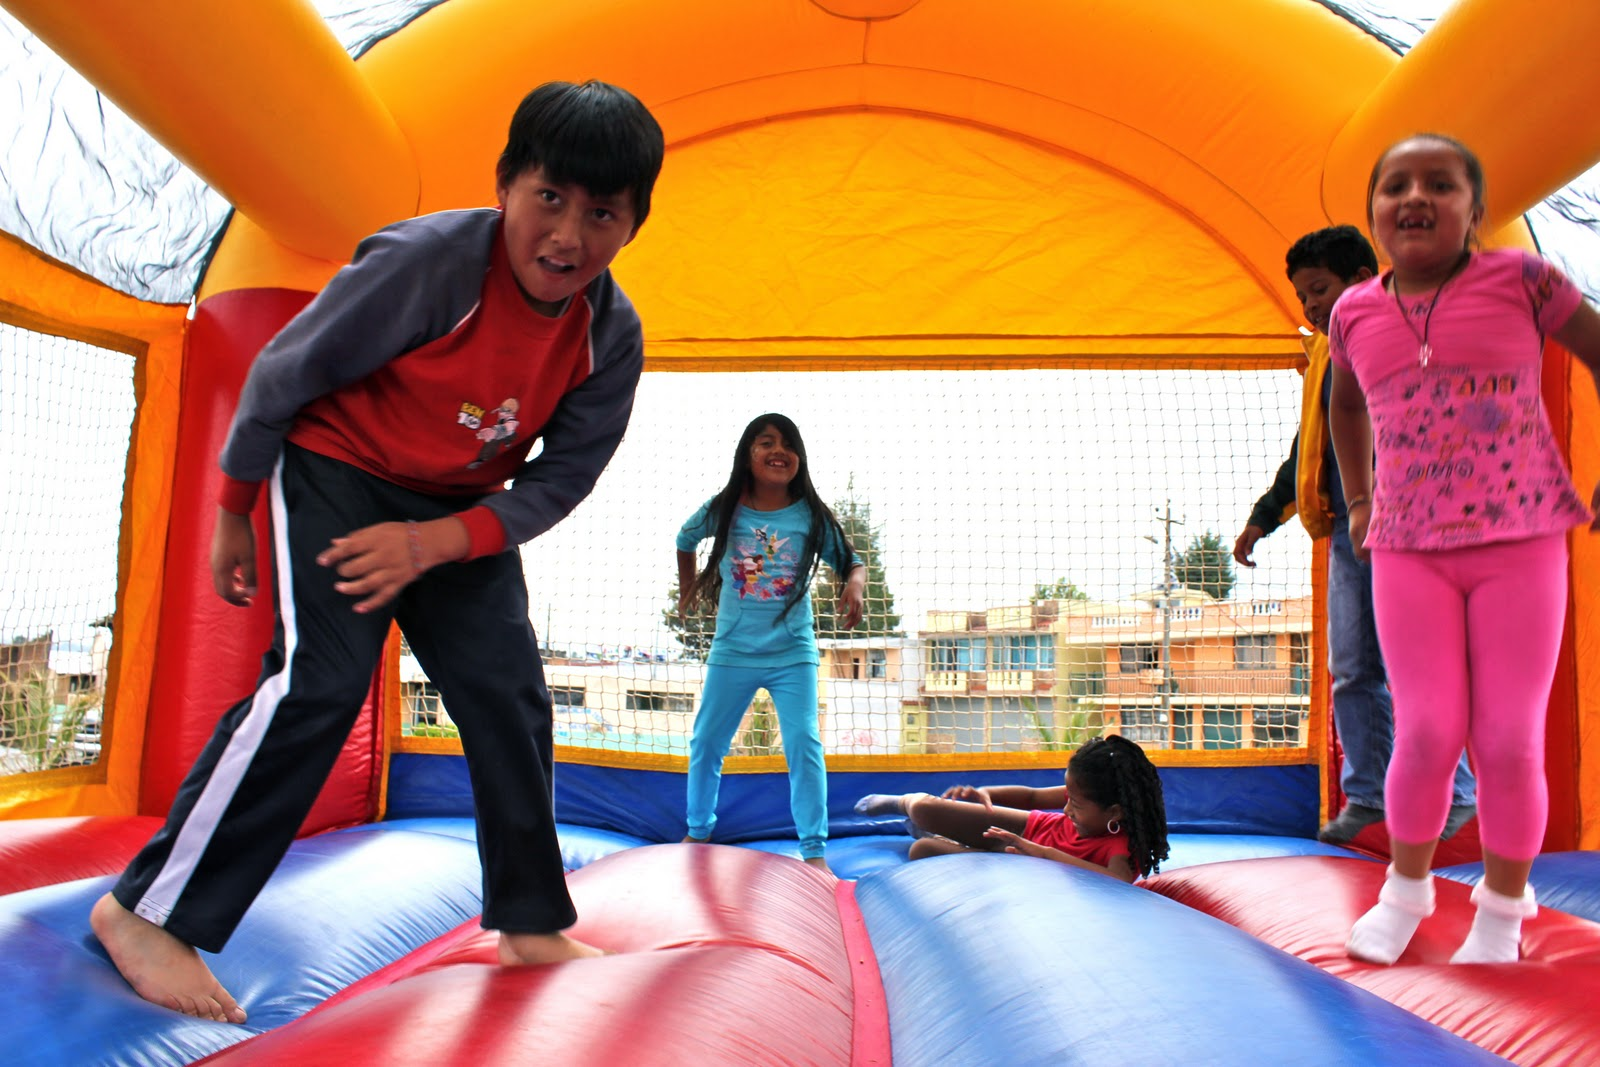 Read more about the article What Age is Old Enough for Bounce Houses?